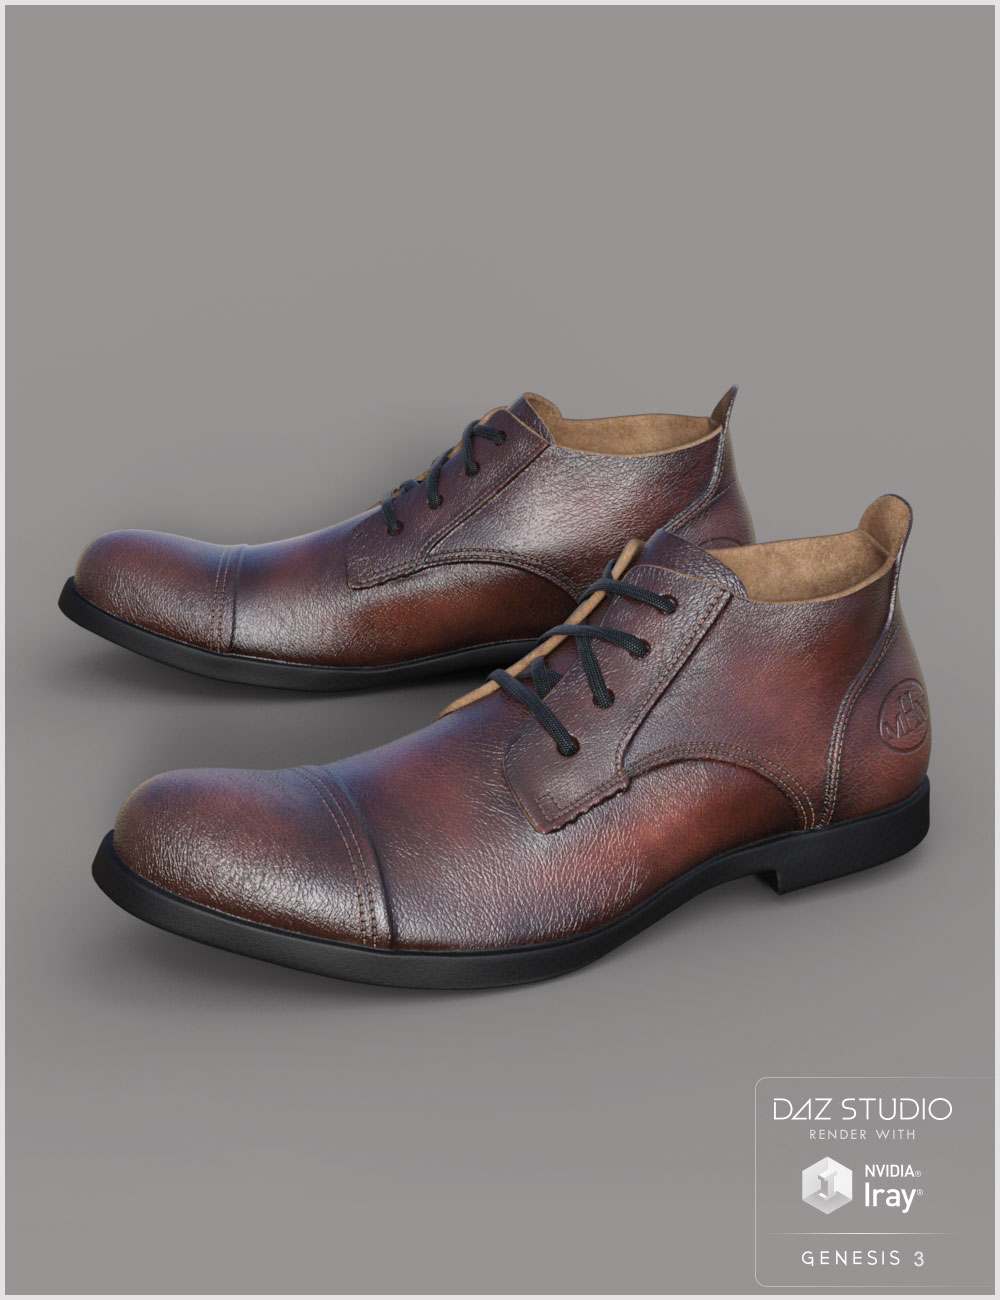 Leather Shoes For Genesis 3 Male(s) by: Cute3D, 3D Models by Daz 3D